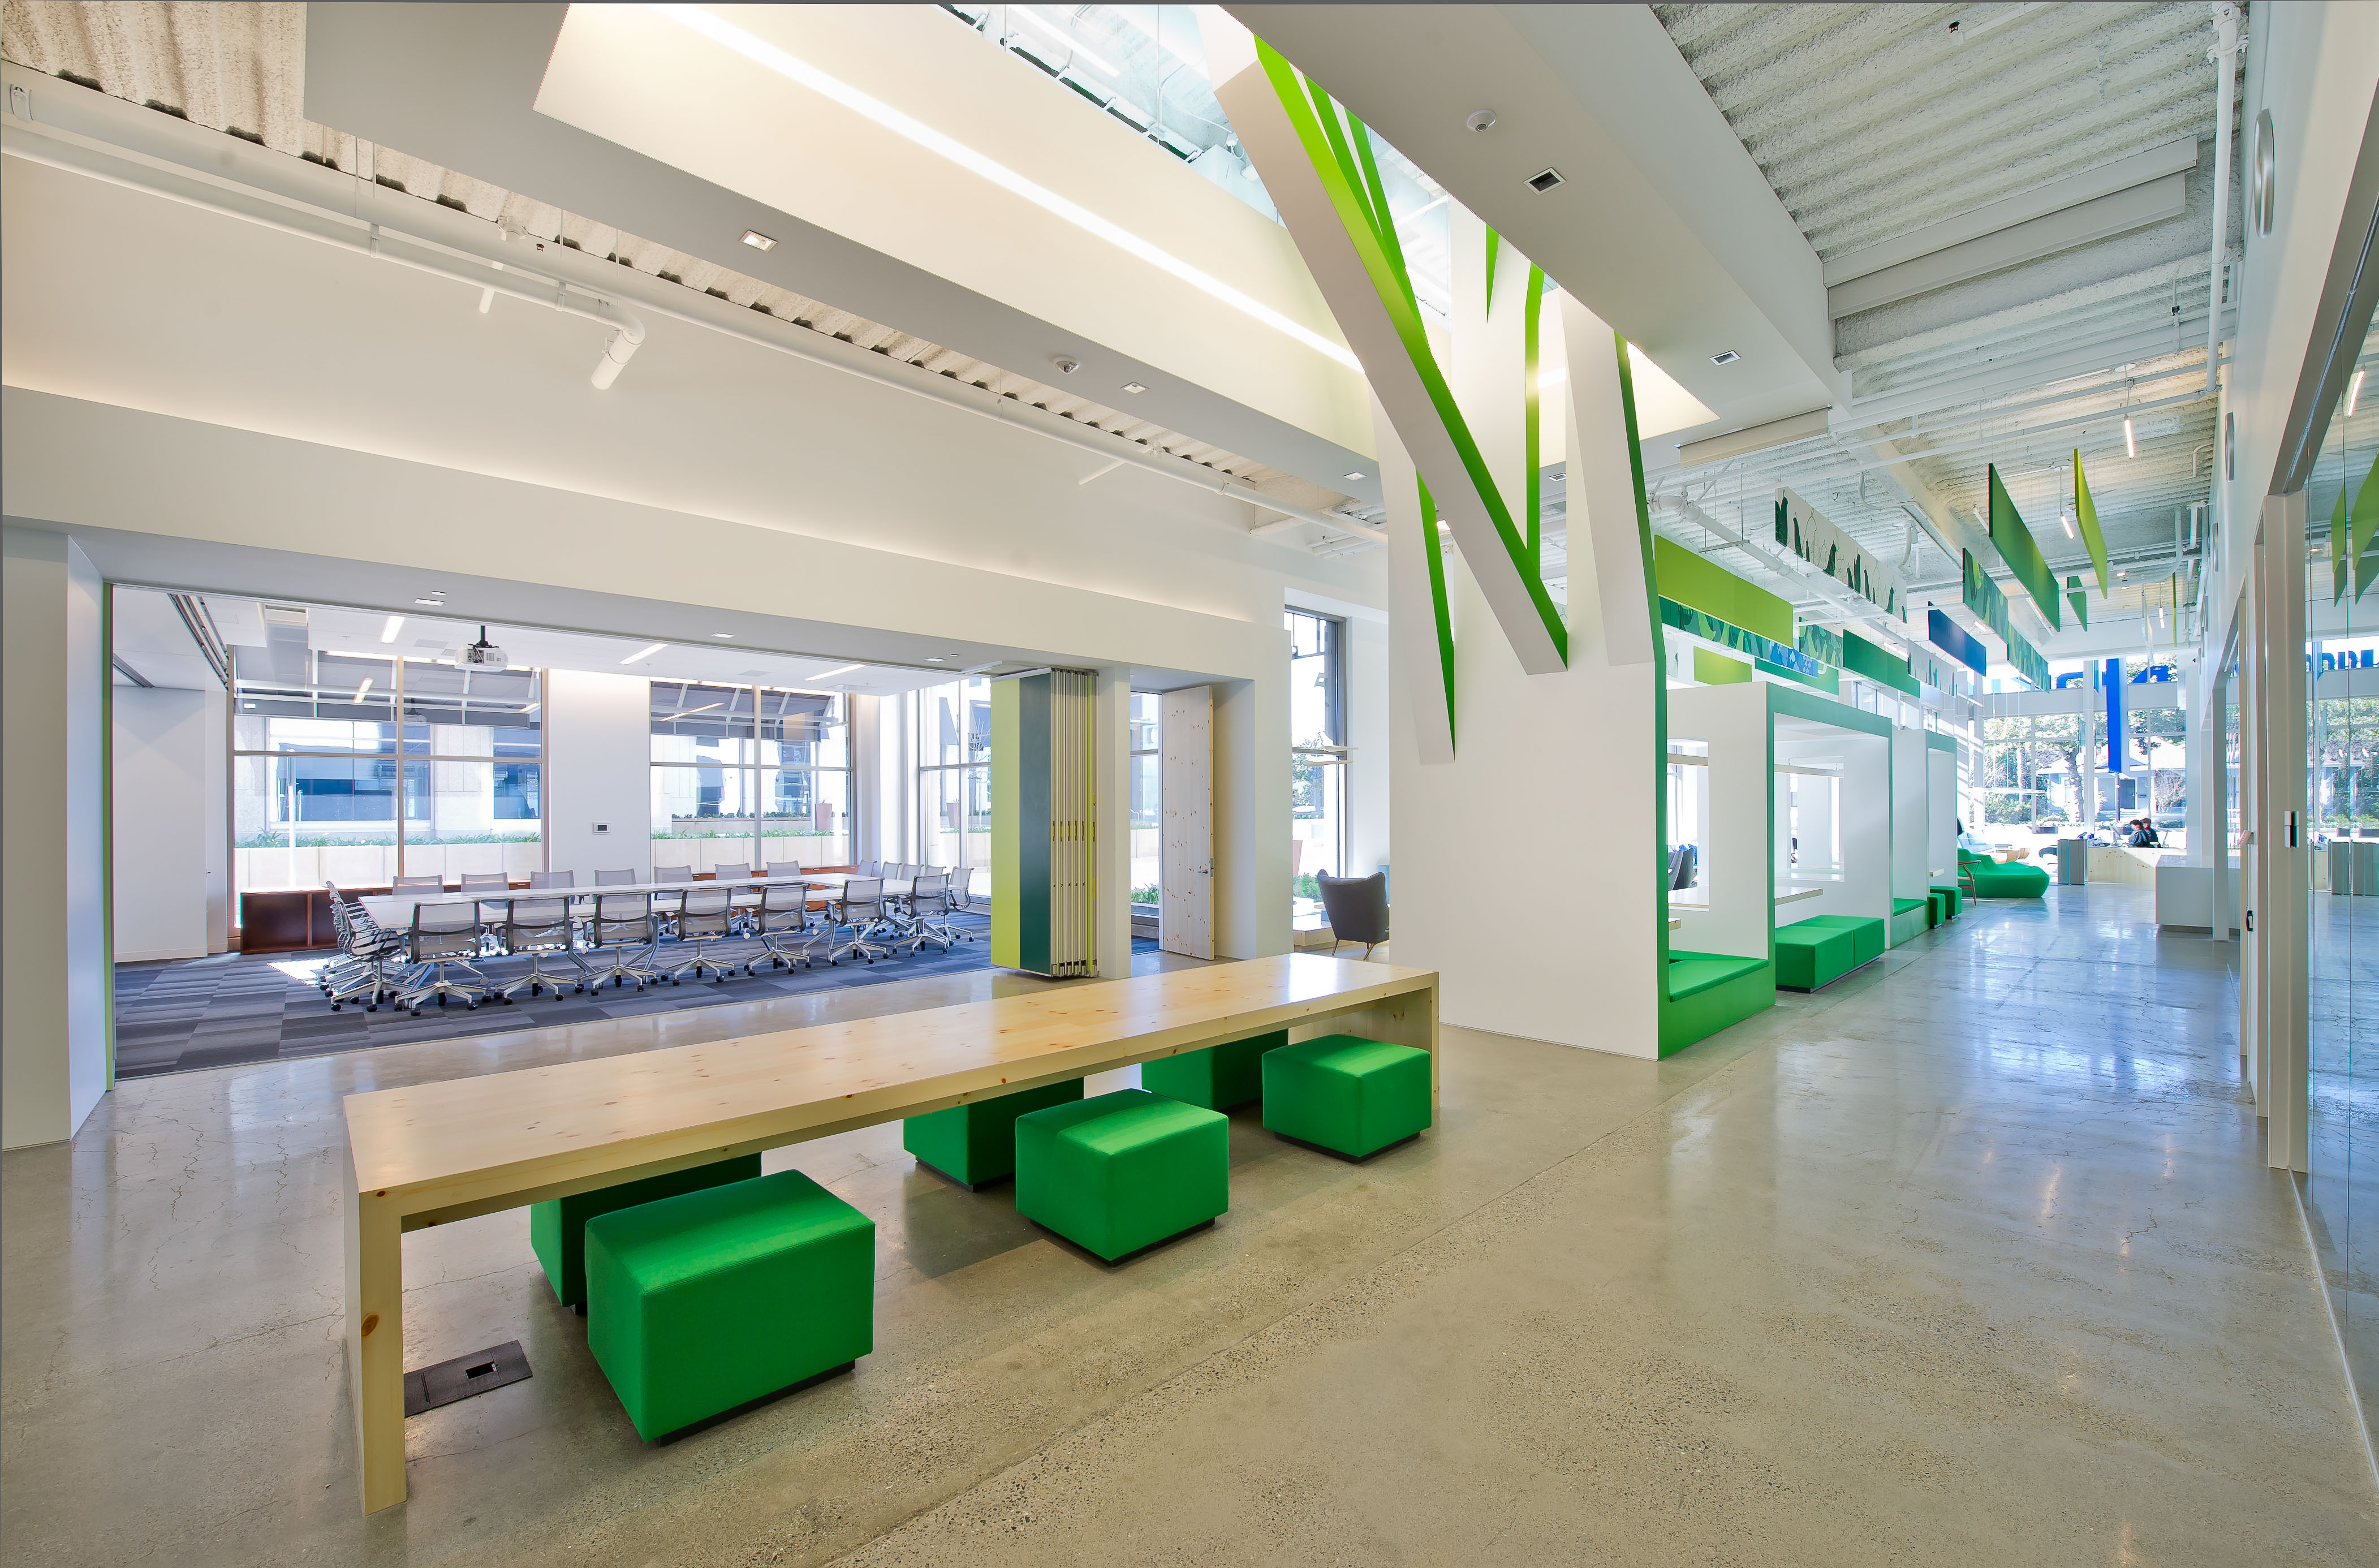 Image of Nokia R&D Center for Excellence